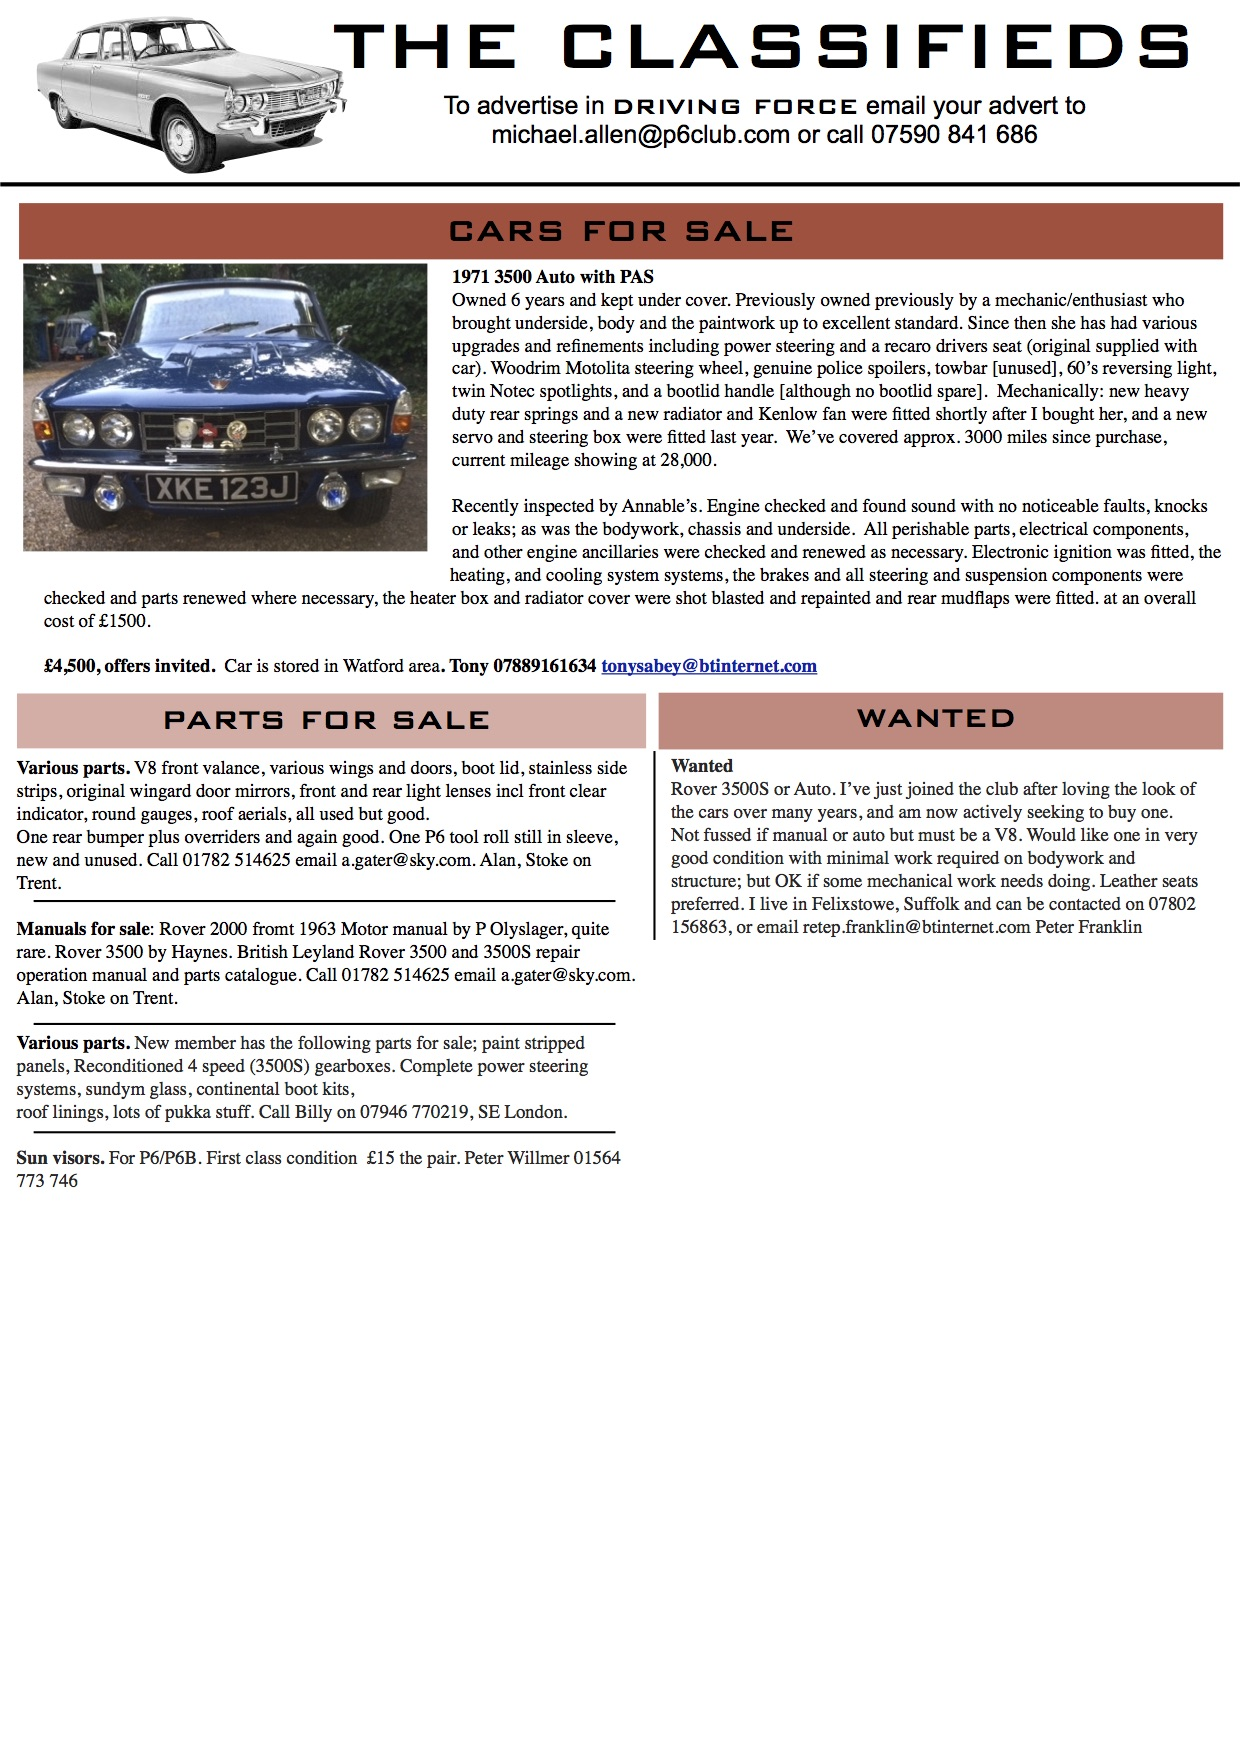 Rover P6 Club Classifieds